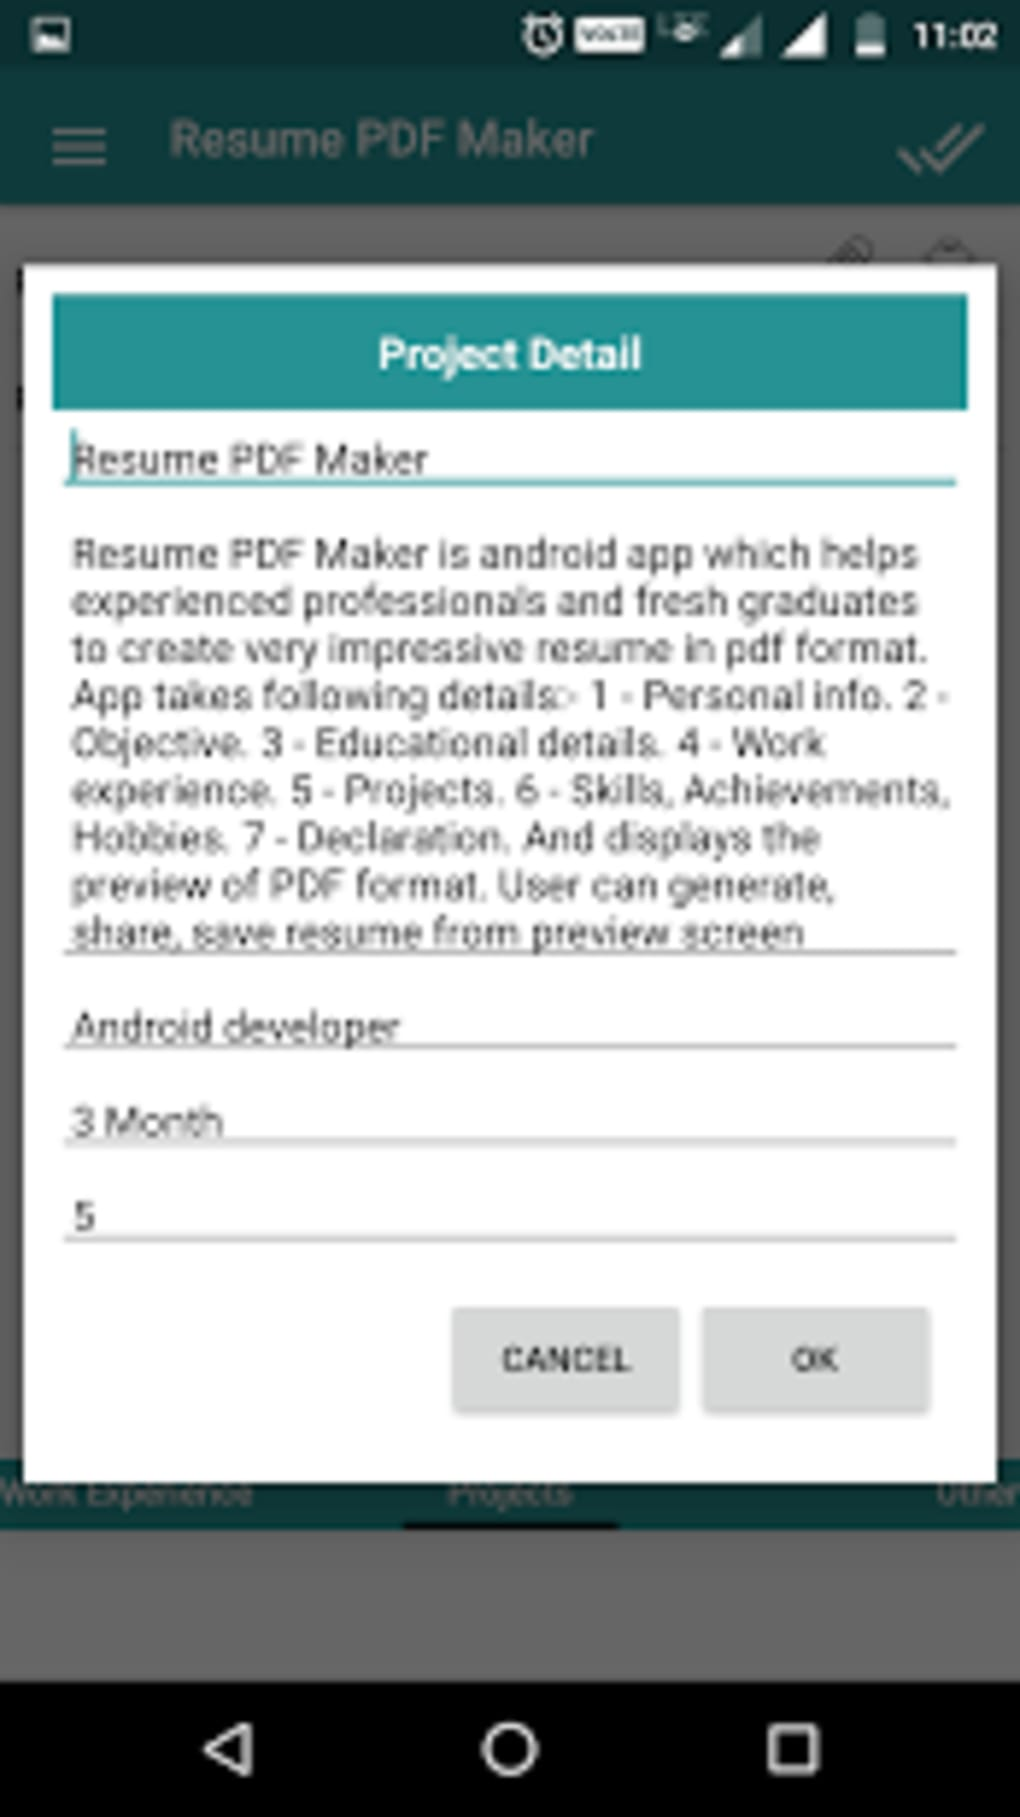 Resume PDF Maker / CV Builder for Android - Download